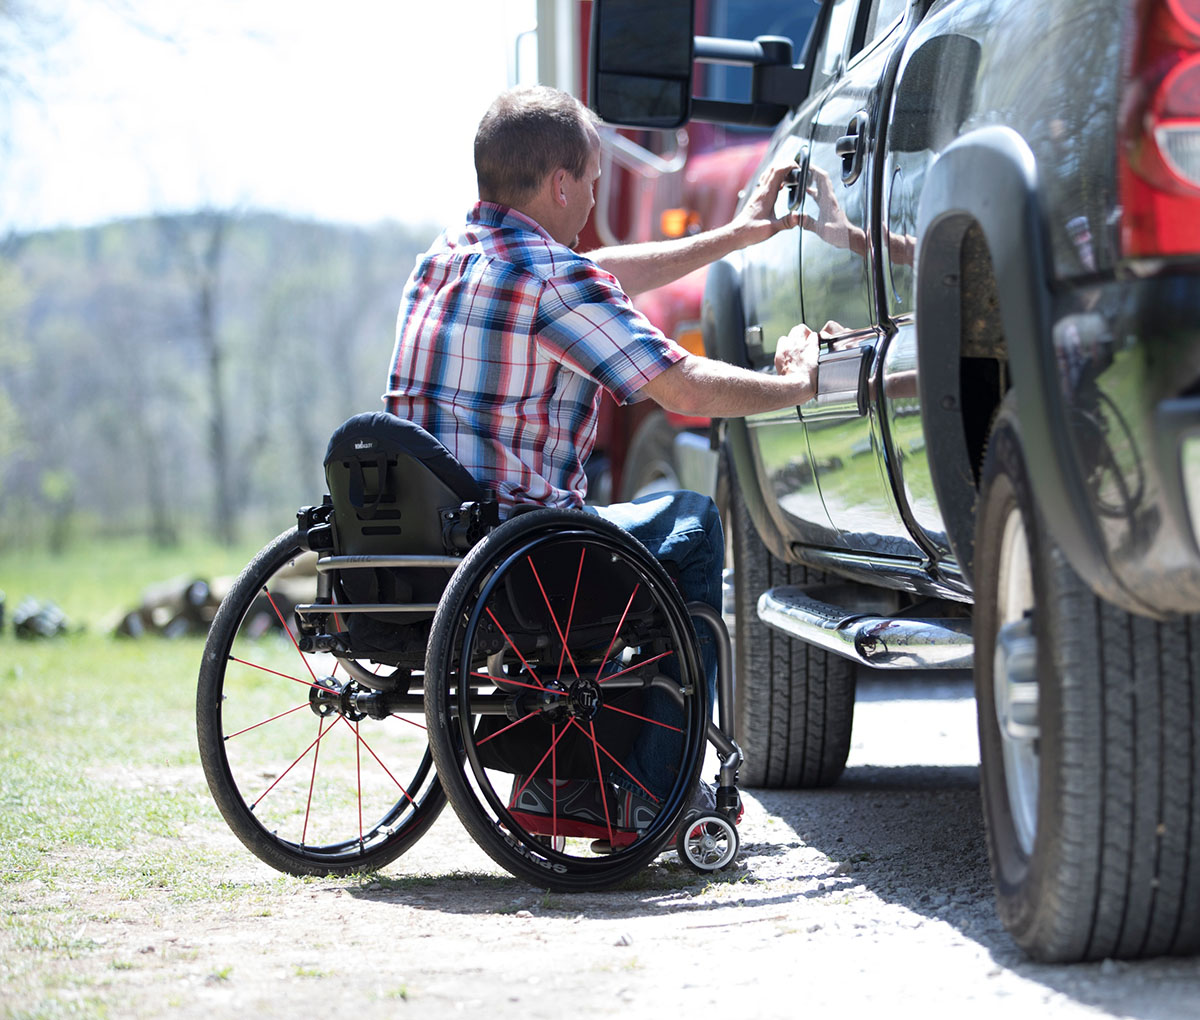 disabled-man-on-wheelchair-using-vehicle-picture-id1186772635